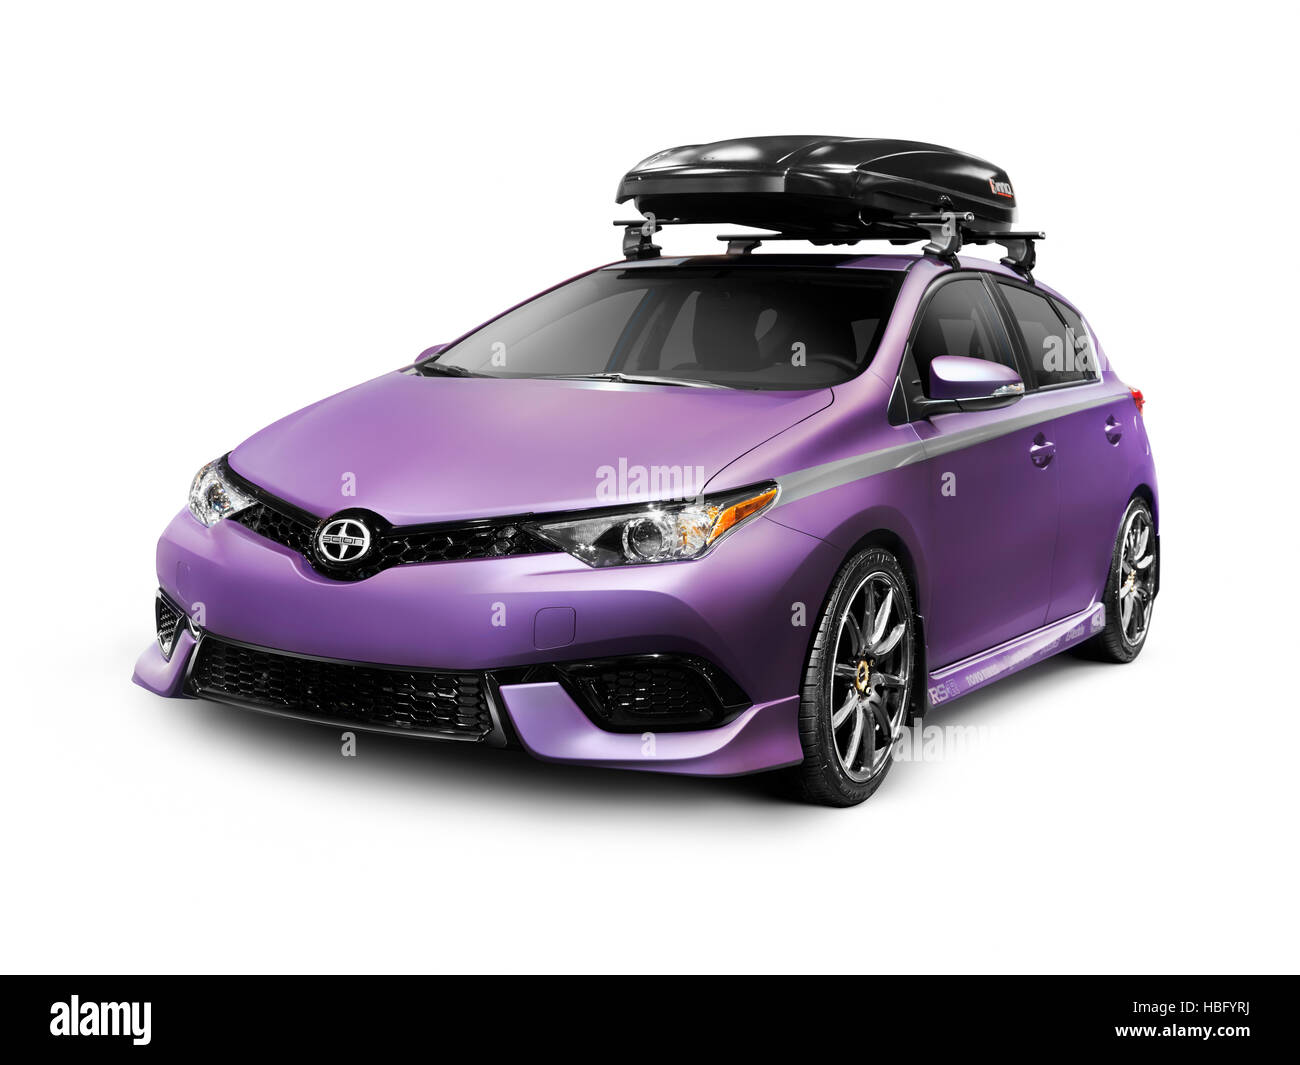 Purple 2016 Scion iM affordable small city car with roof rack cargo box isolated on white background Stock Photo